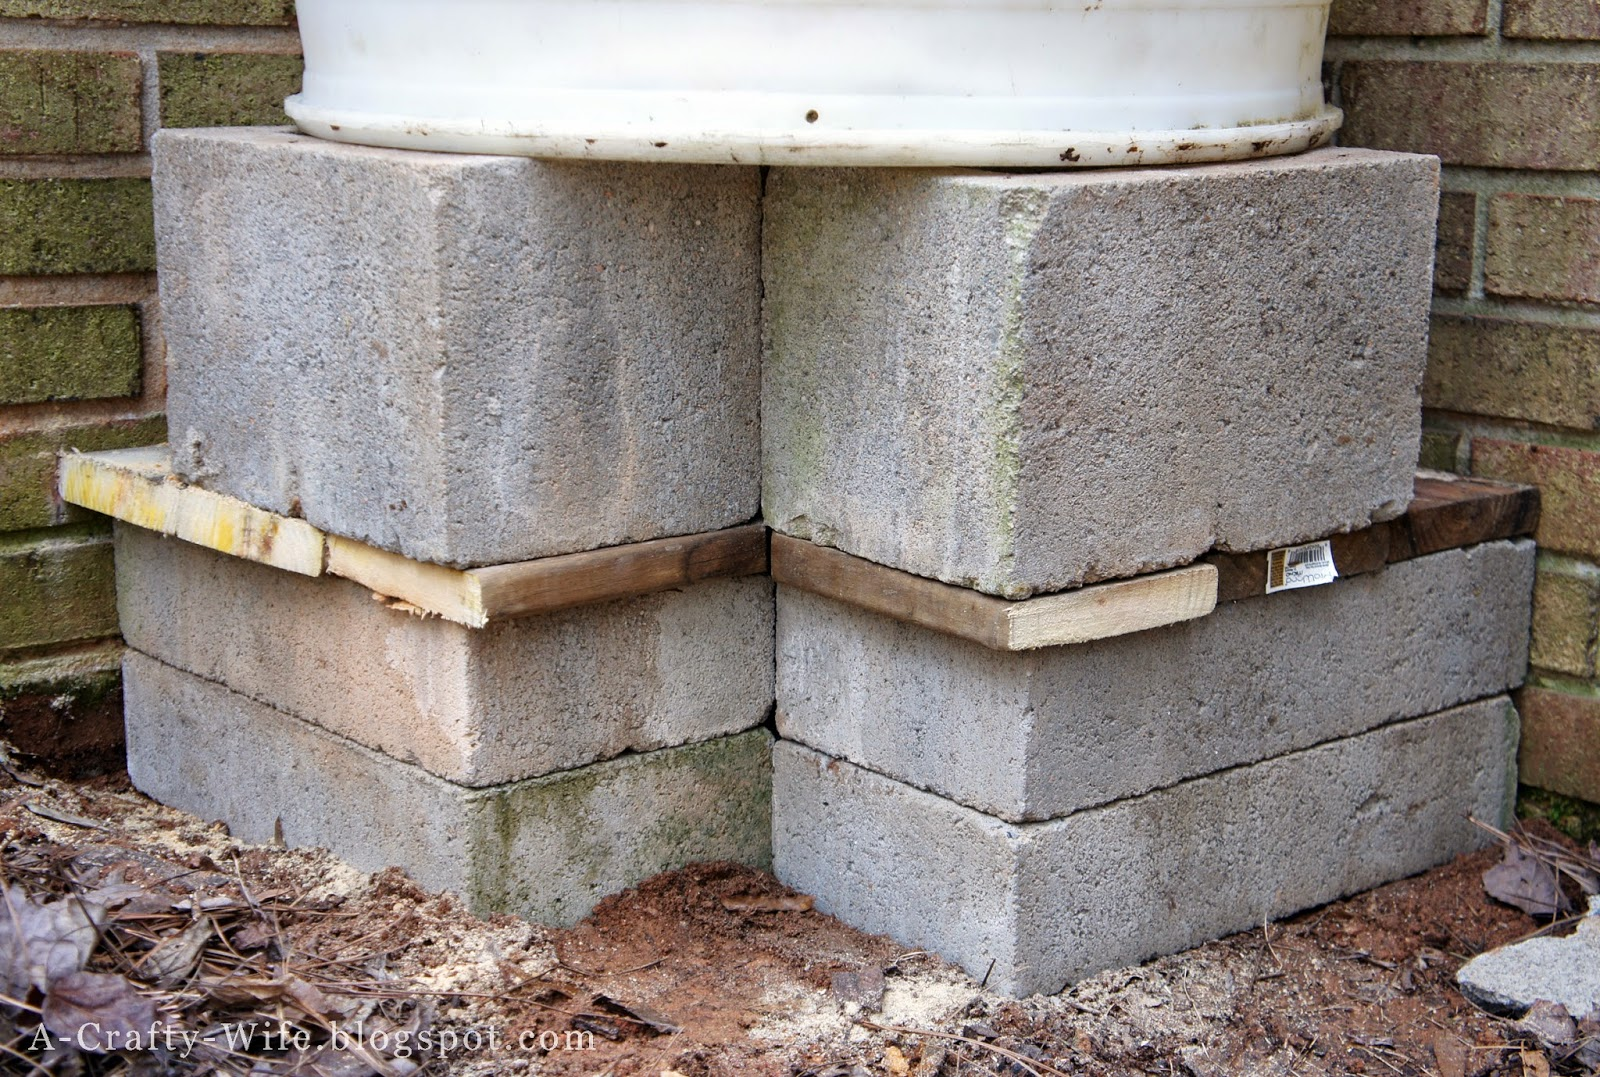 Elevate rain barrel off ground with cinder blocks | A Crafty Wife